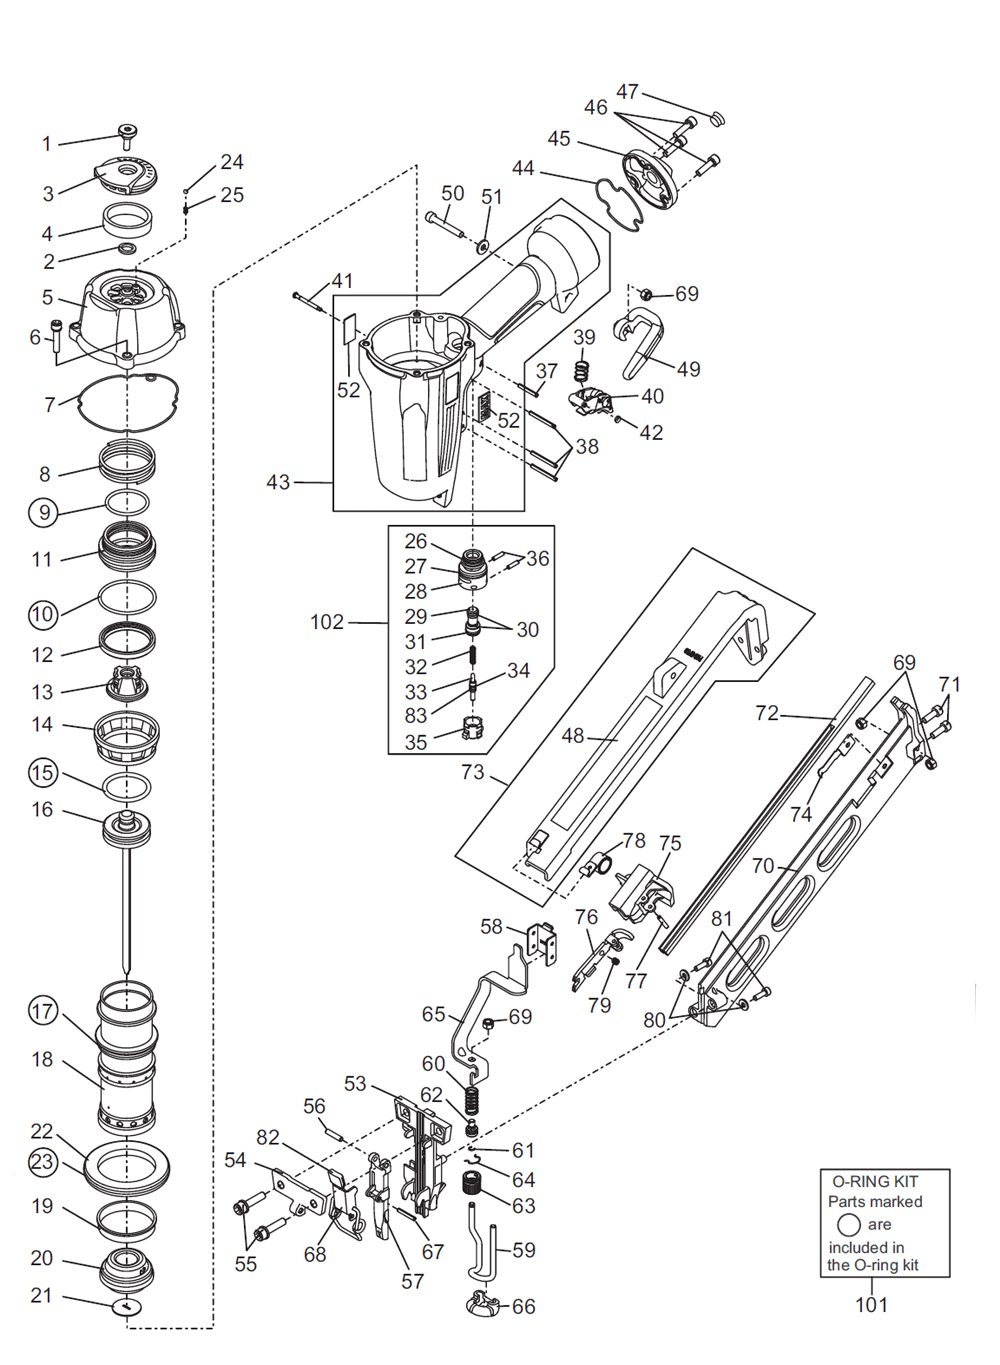 Buy Max Nf665 15 Replacement Tool Parts A Href Wilton D6 List And Diagram Ereplacementpartscom Schematic